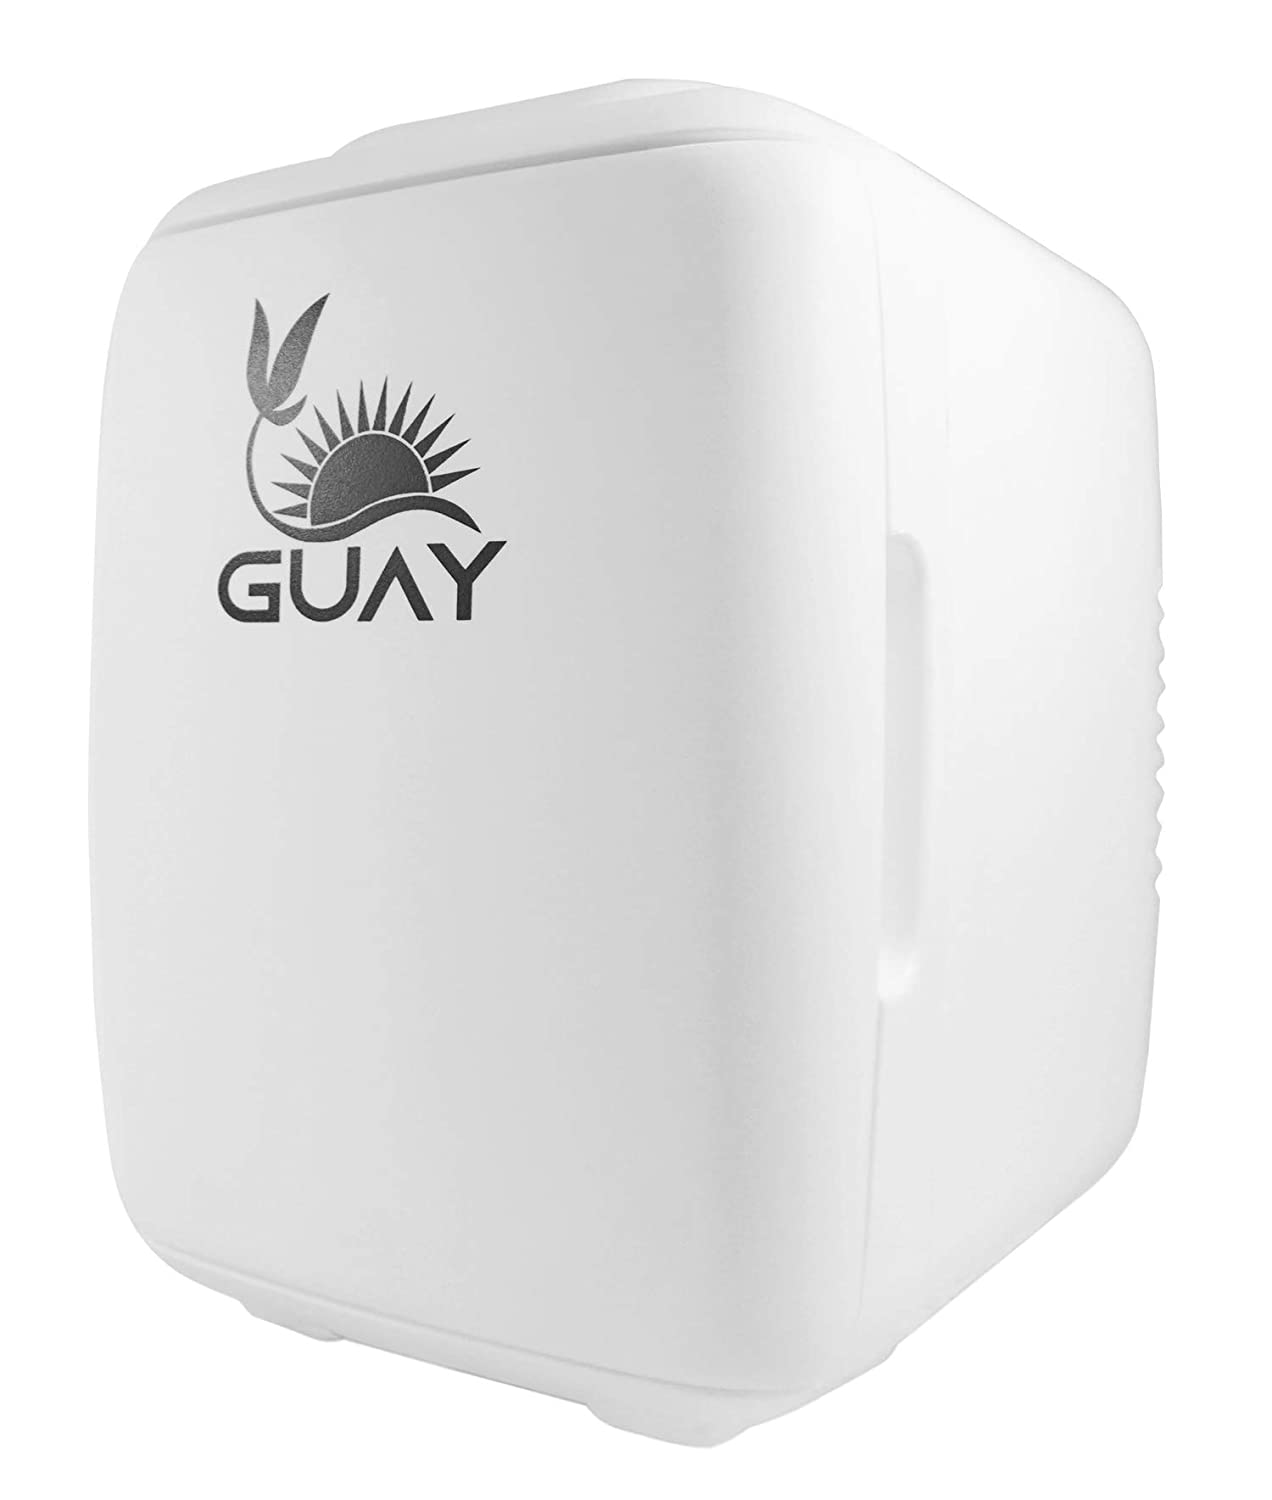 Guay Outdoors Portable Thermoelectric Mini Fridge Cooler and Warmer – 4 Liter/6 can. AC/DC Great for Car, Travels, Dorm, Camping and Bedroom - White